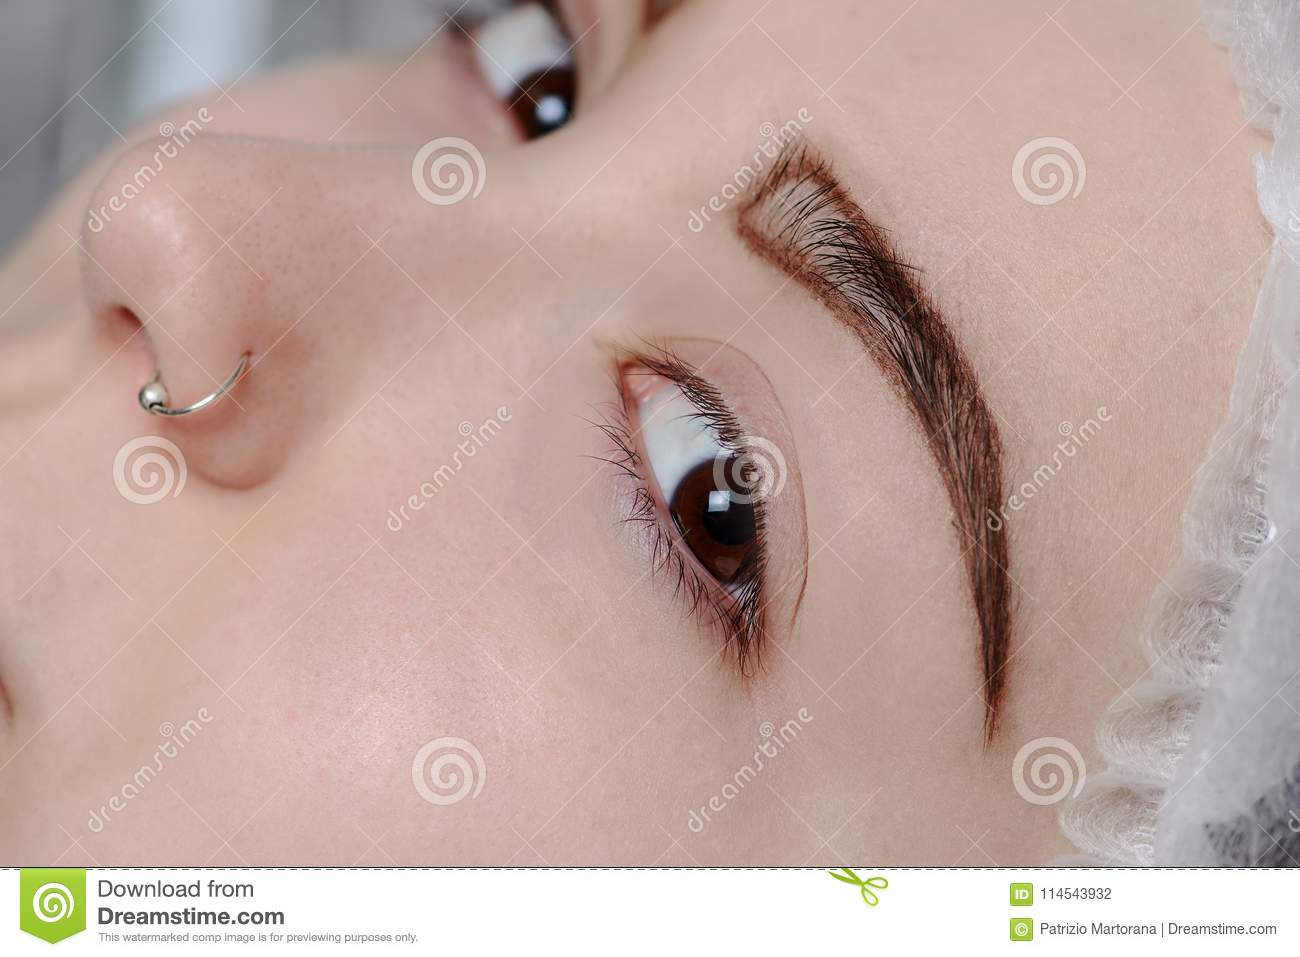 Permanent Makeup Permanent Tattooing Of Eyebrows Stock Photo